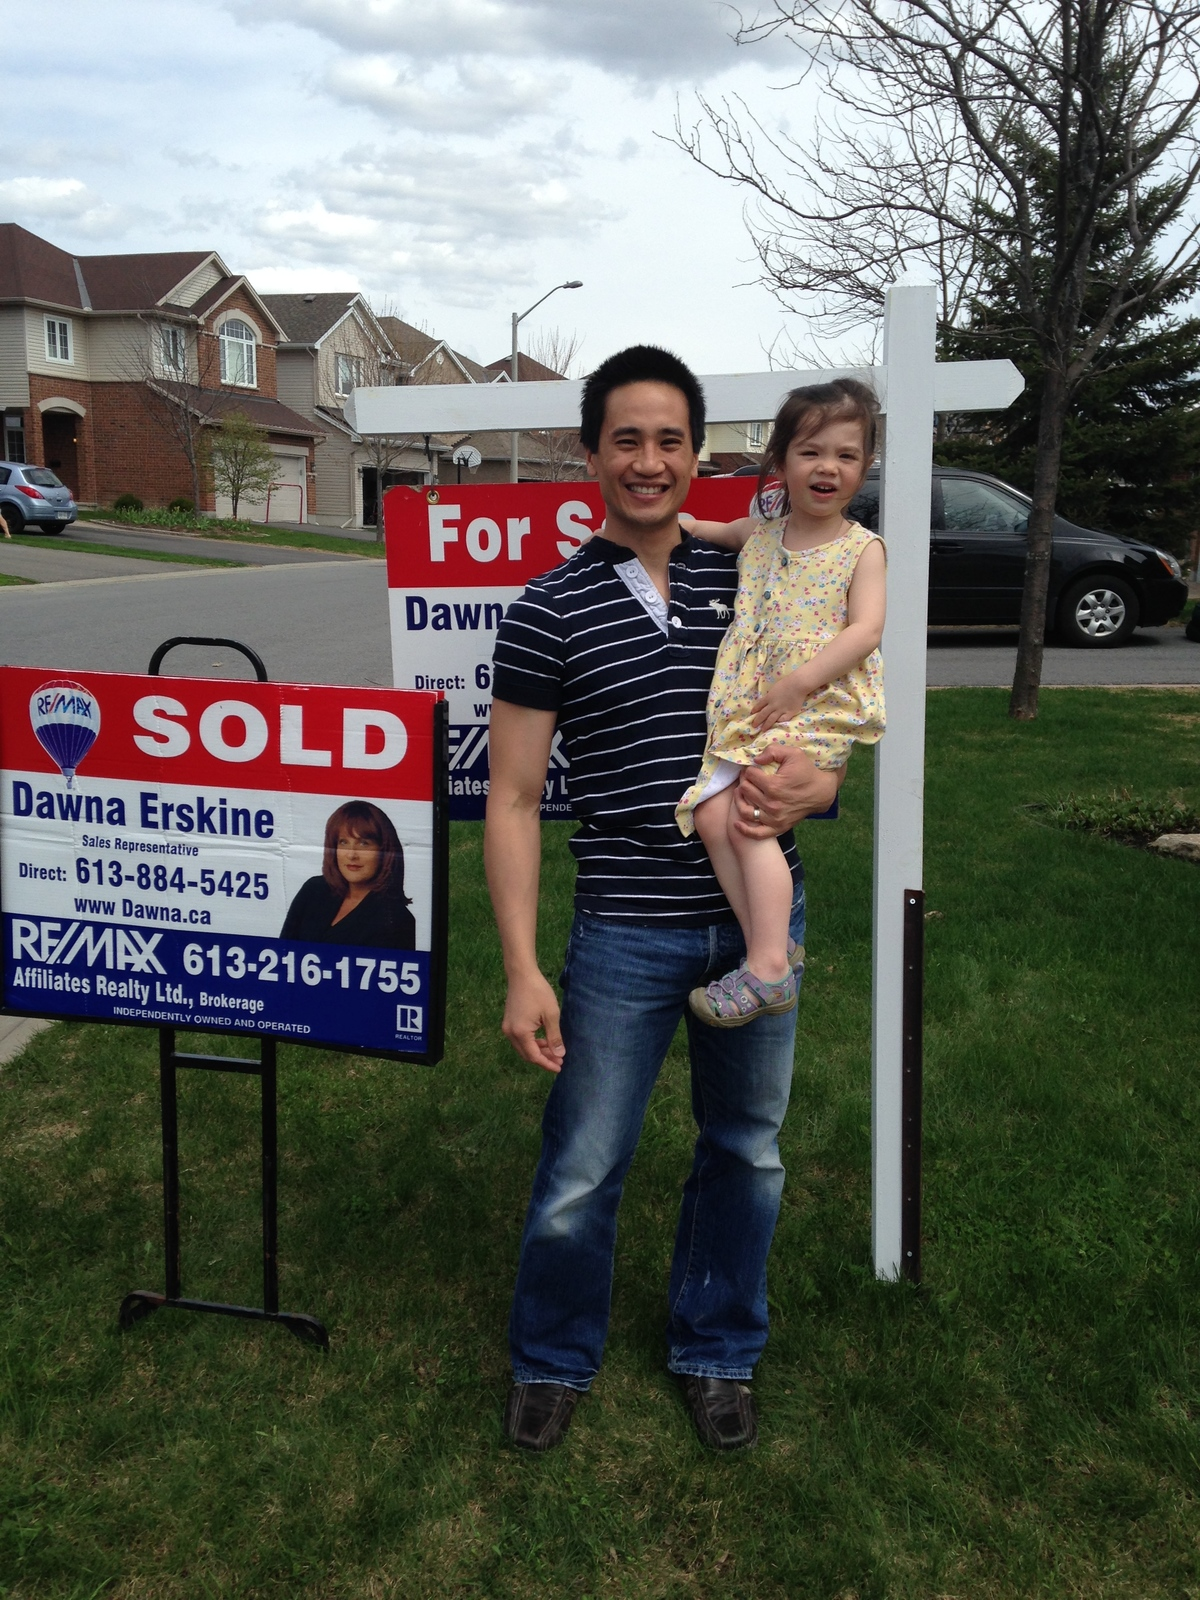 Sold in 3 days!